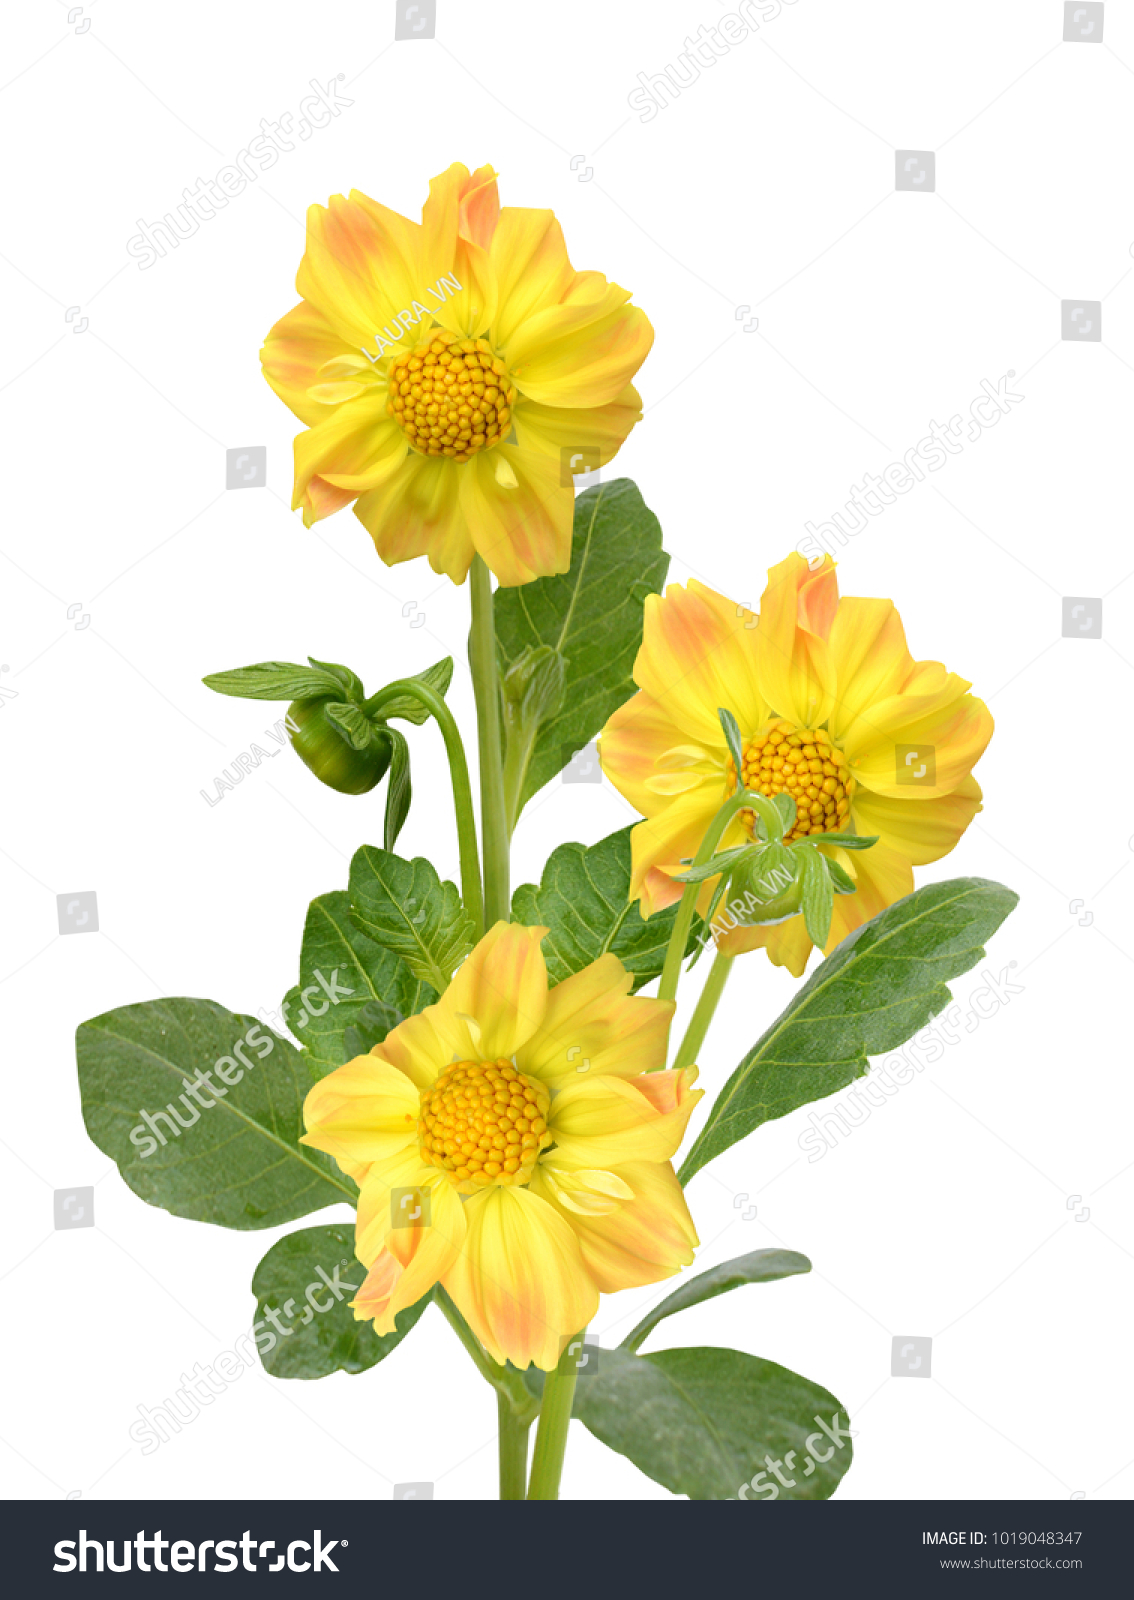 Beautiful yellow dahlia flower isolated on white background ez canvas id 1019048347 izmirmasajfo